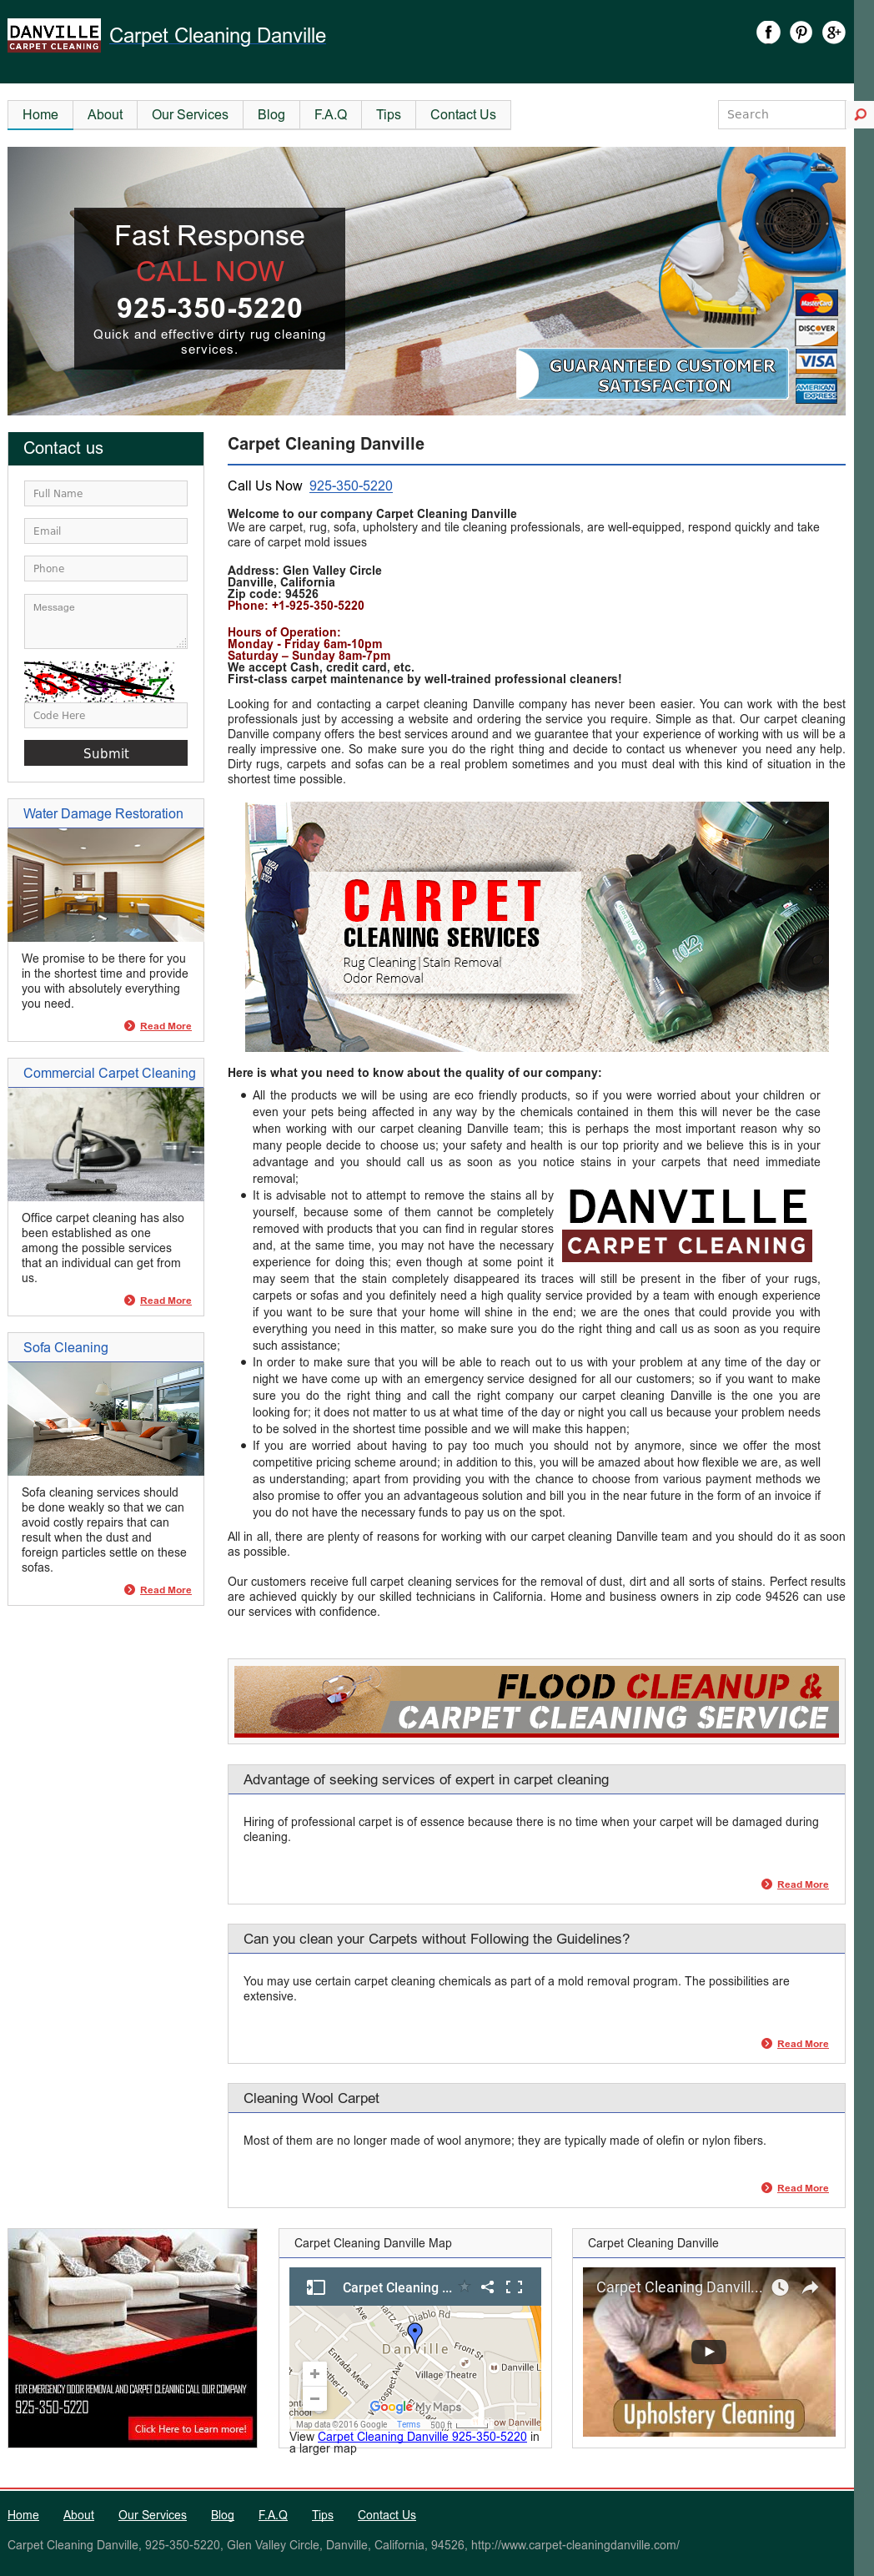 Carpet Cleaningdanville Competitors, Revenue and Employees